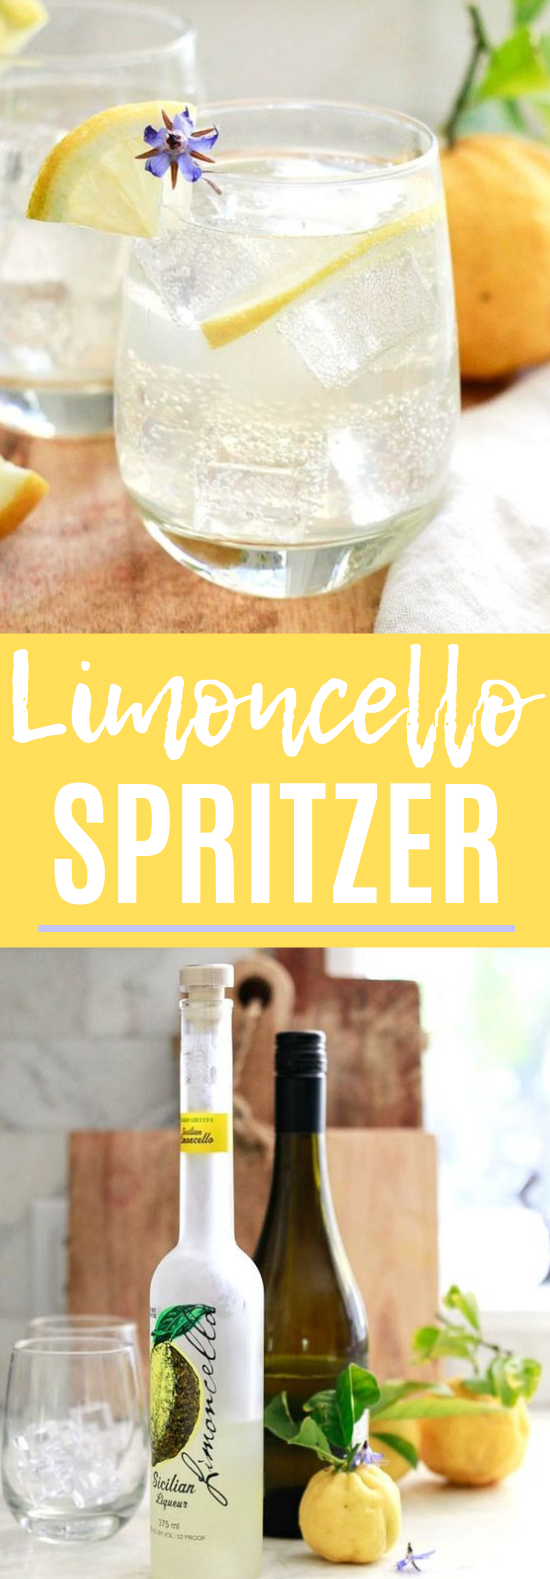 Limoncello Spritzer #lemon #cocktails #limoncellococktails